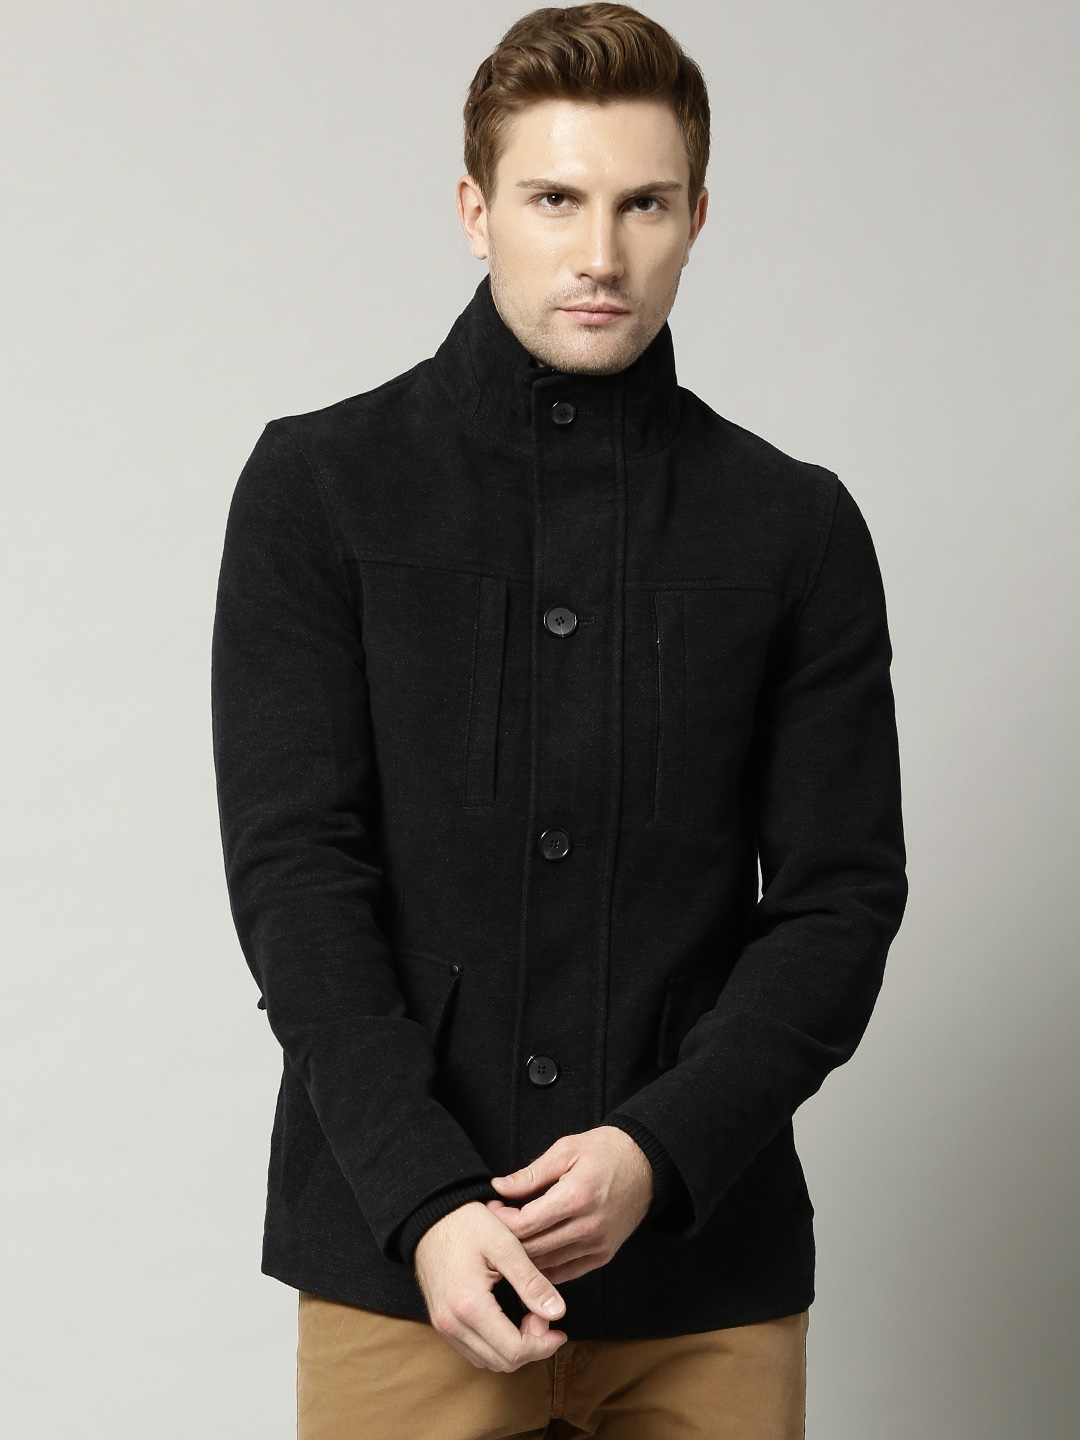 Mens jacket marks and spencer - Rs 8999